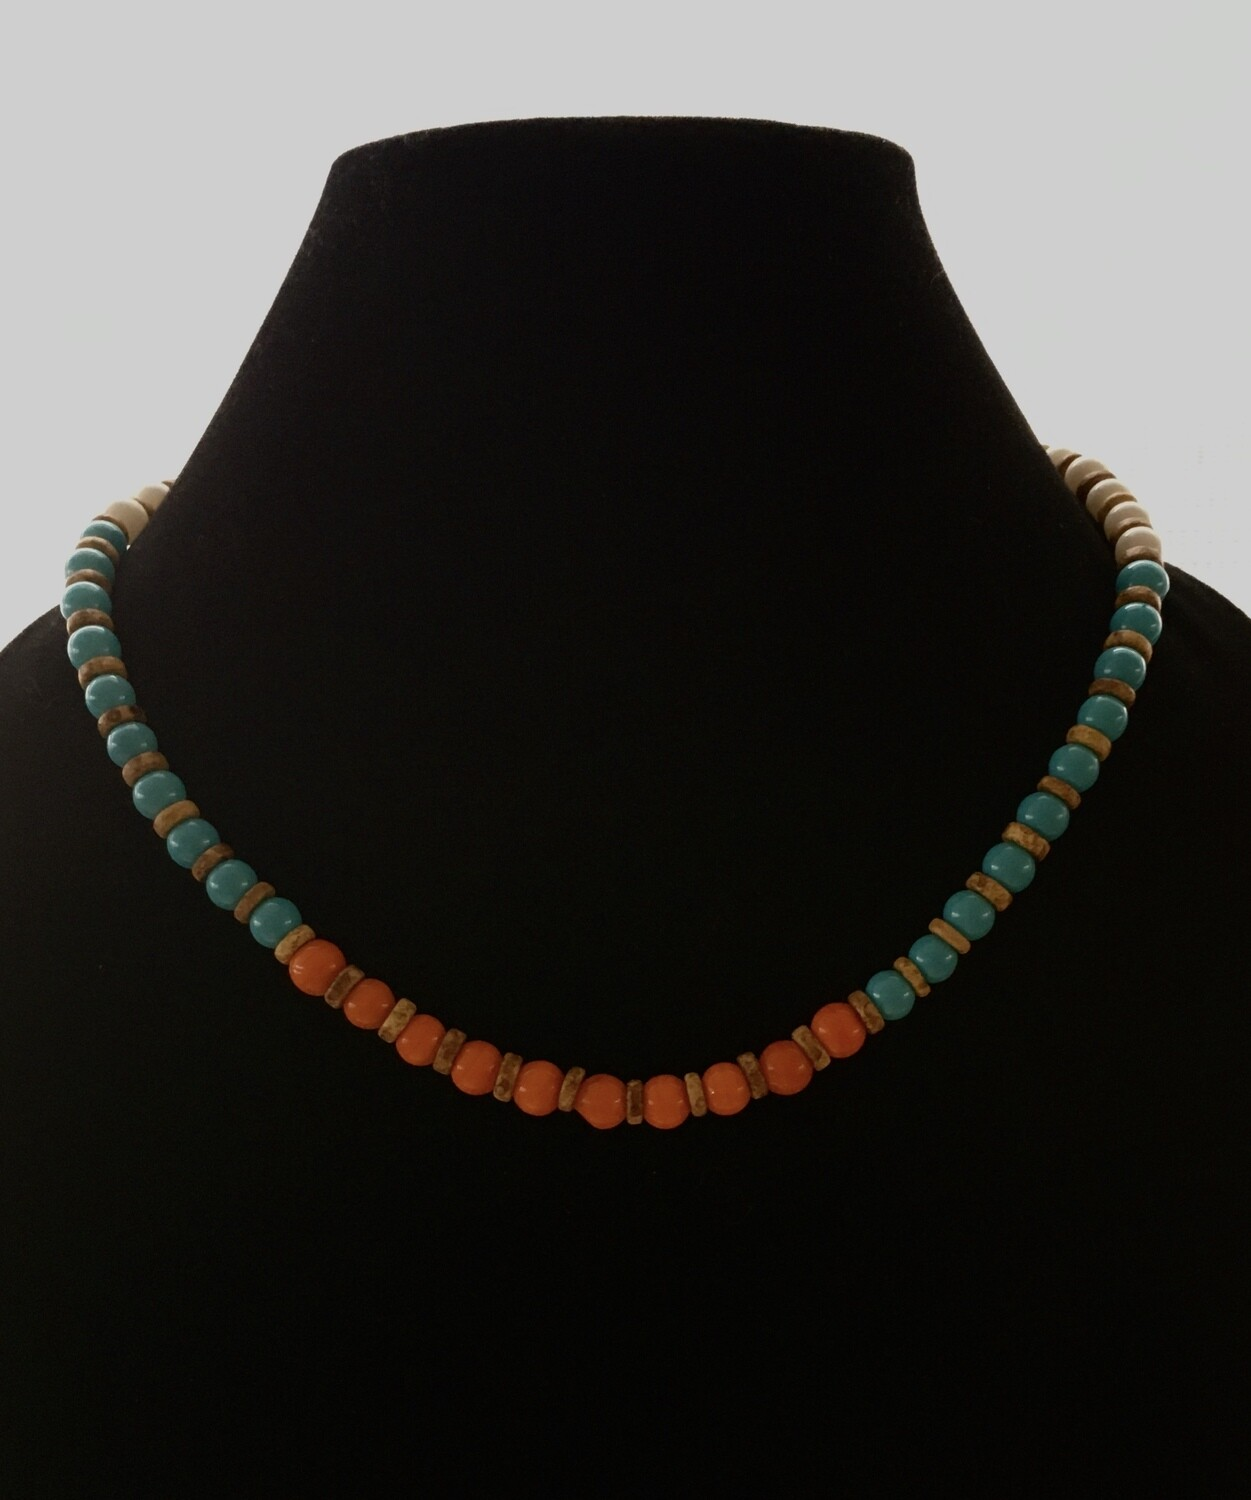 Red,emerald,cream beads necklace